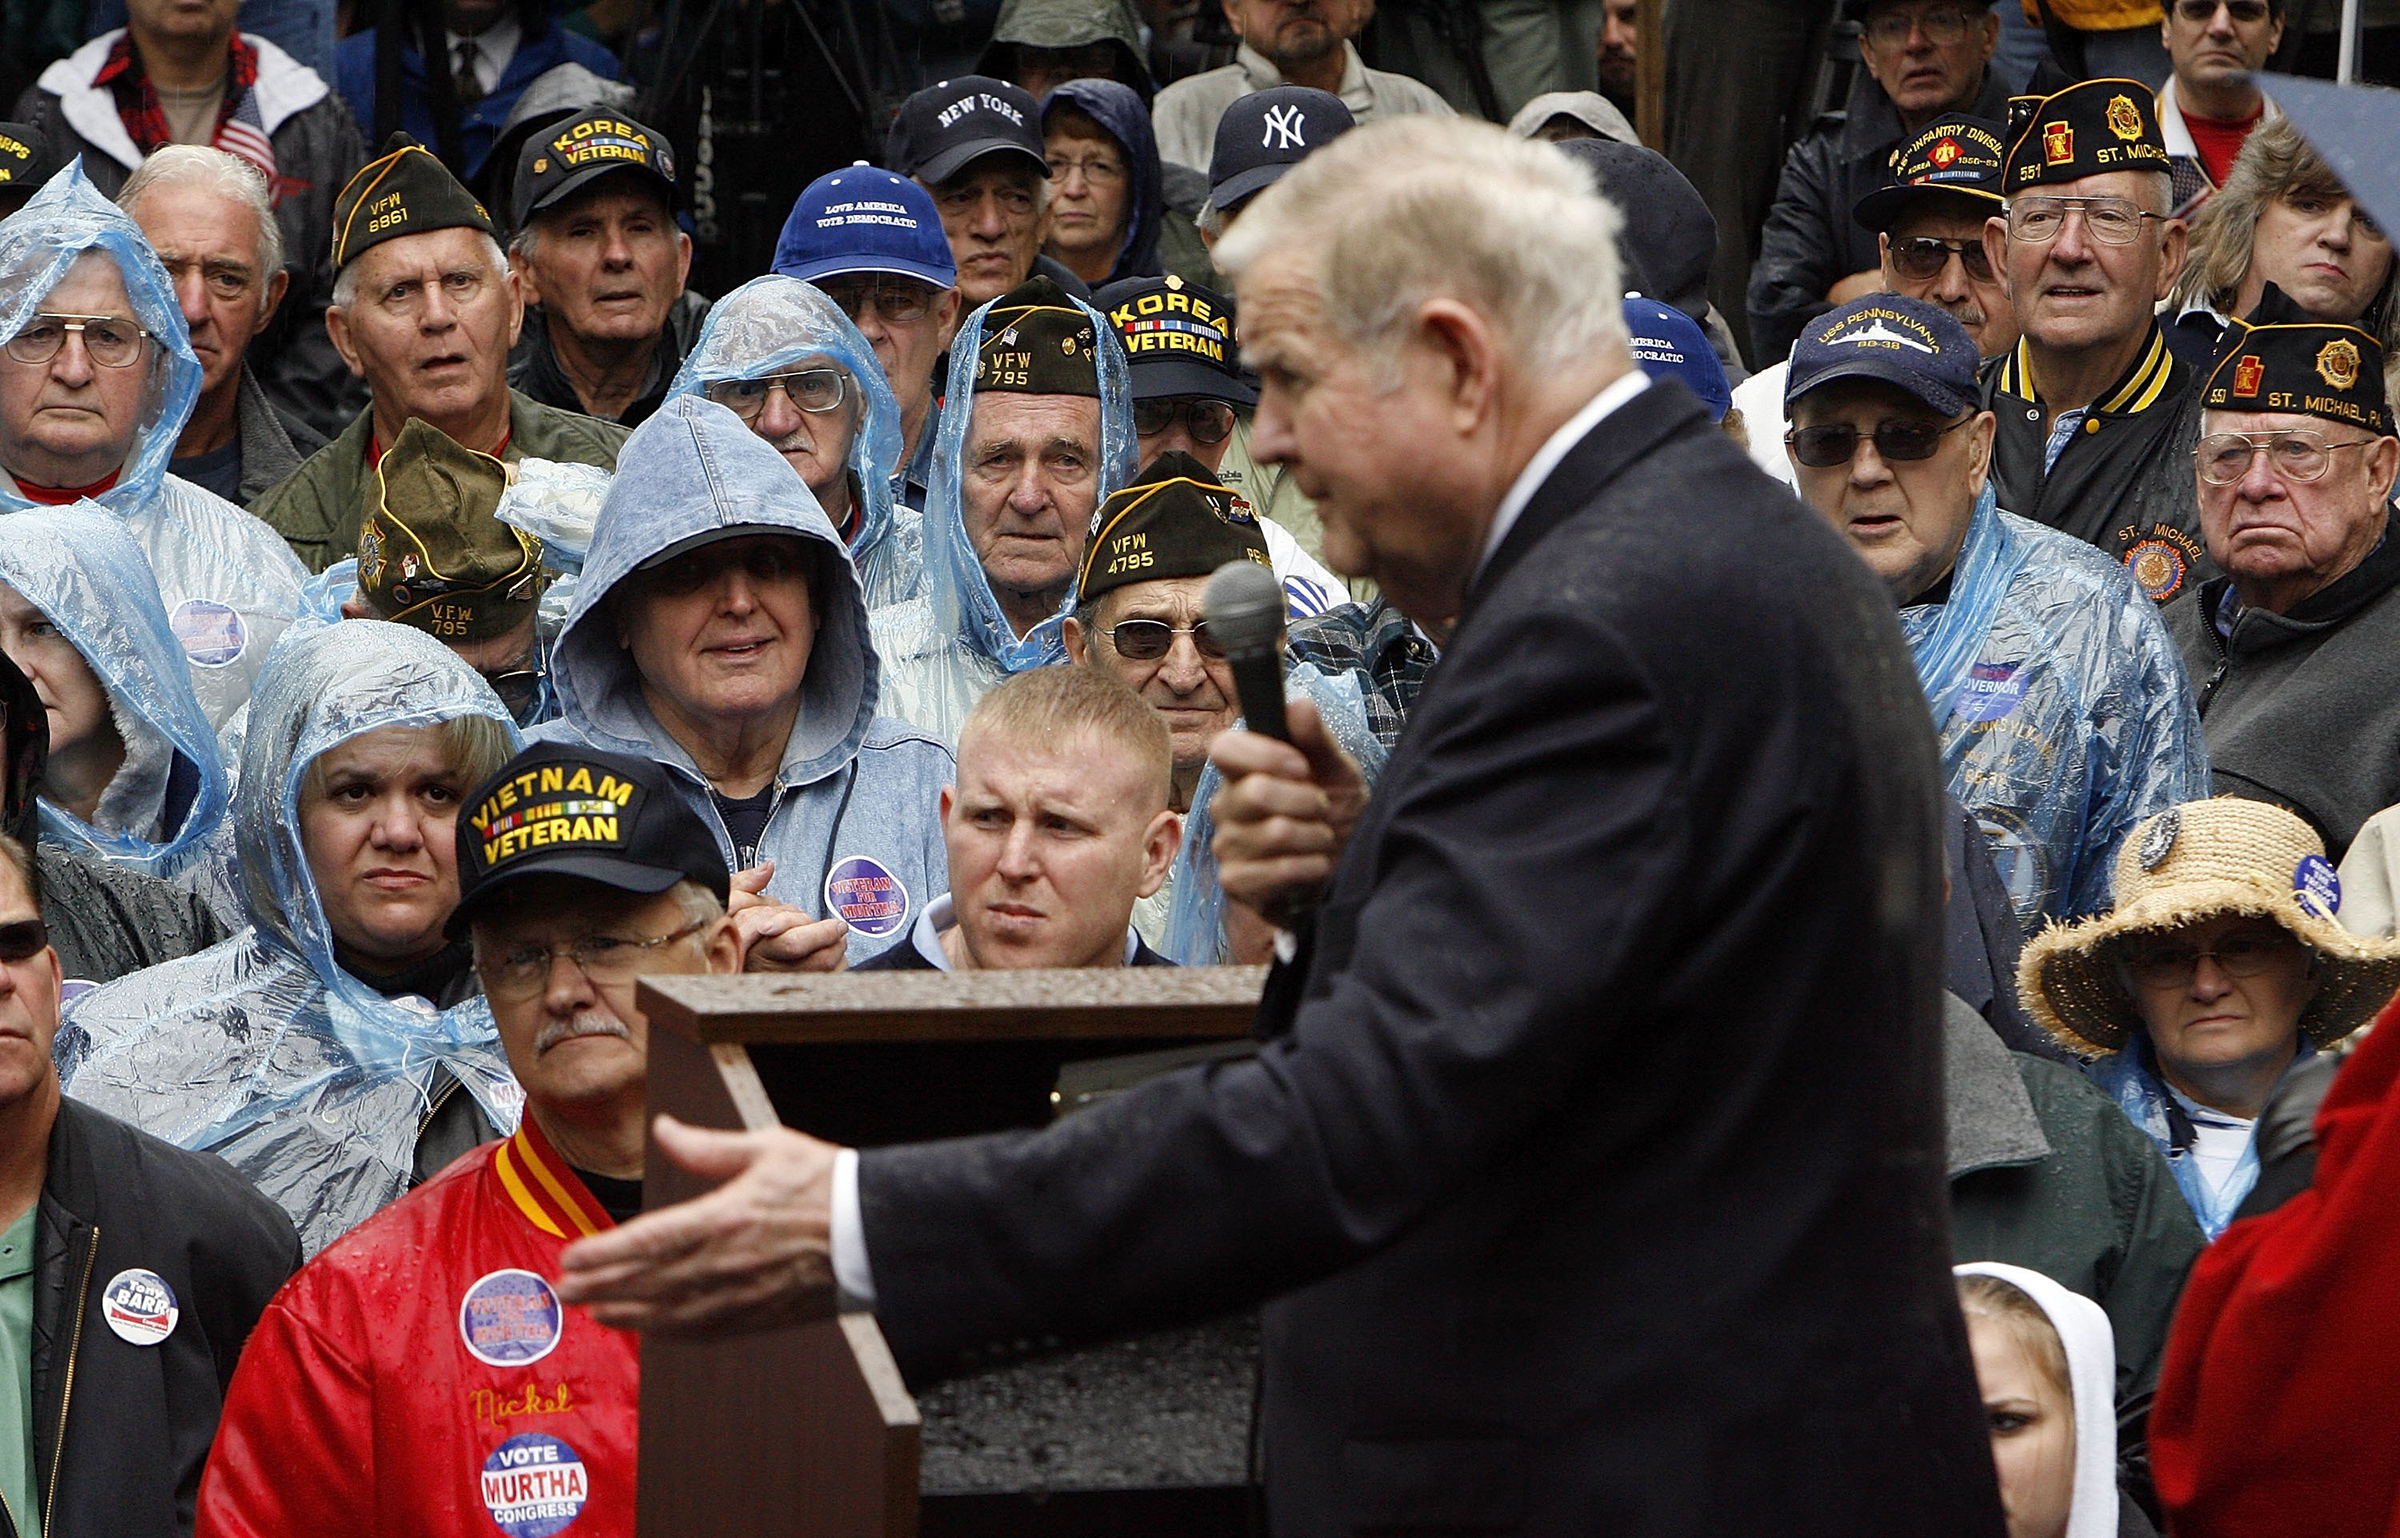 All eyes are on Rep. John Murtha (D-PA) as he addresses voters and veterans during a campaign rally in Johnstown, Pa., on Sept. 30, 2006. Murtha was the first Vietnam combat veteran elected to Congress in 1974.